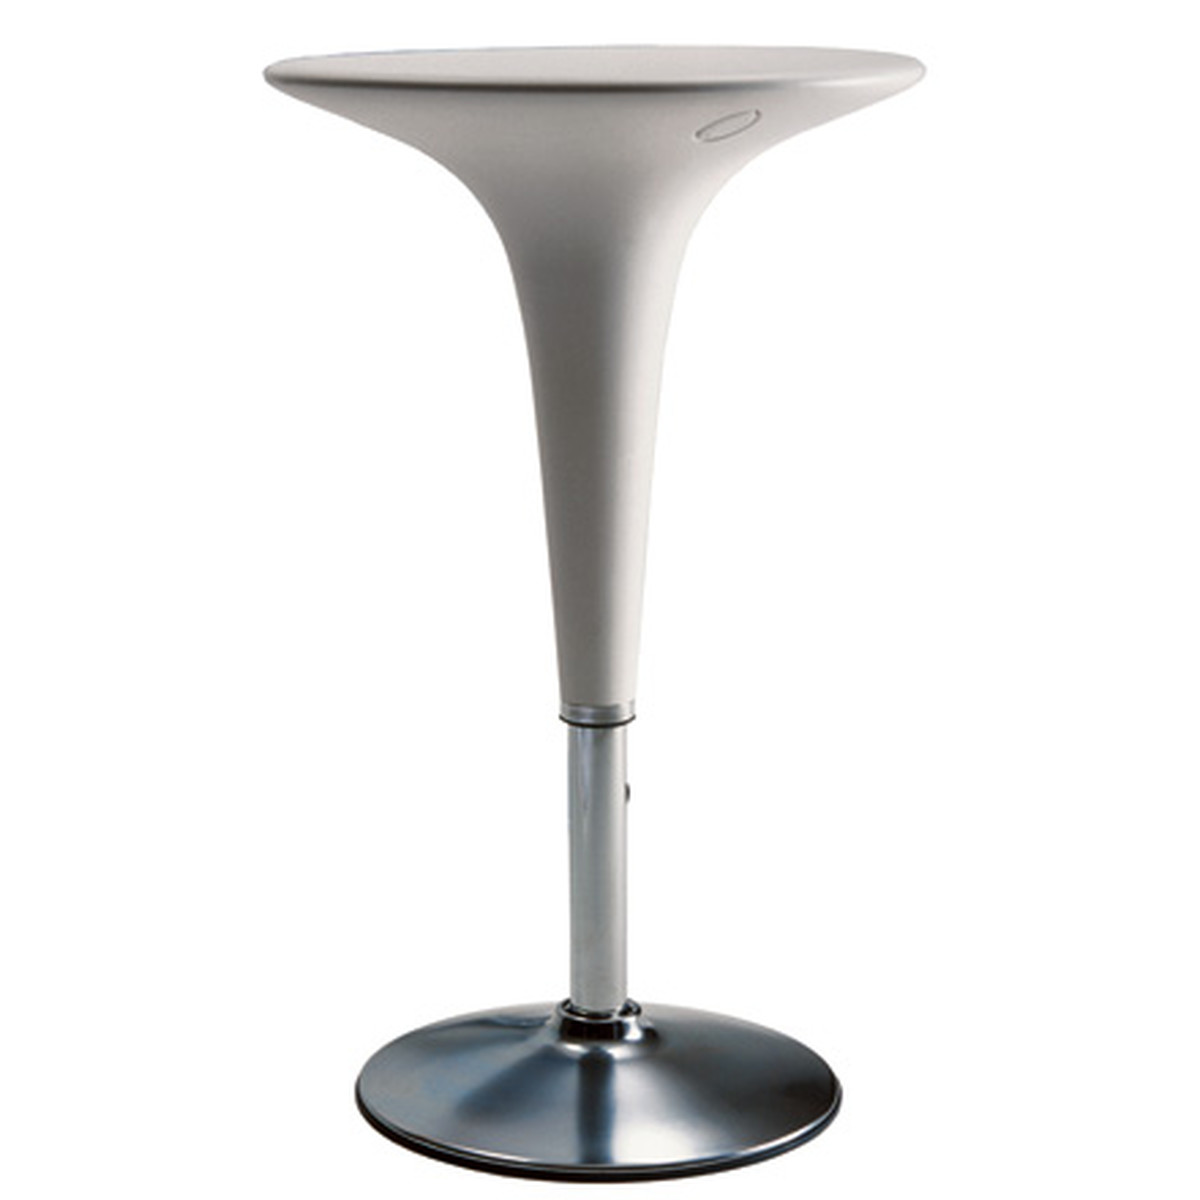 Magis bombo table adjustable stefano giovannoni owo for Magis bombo